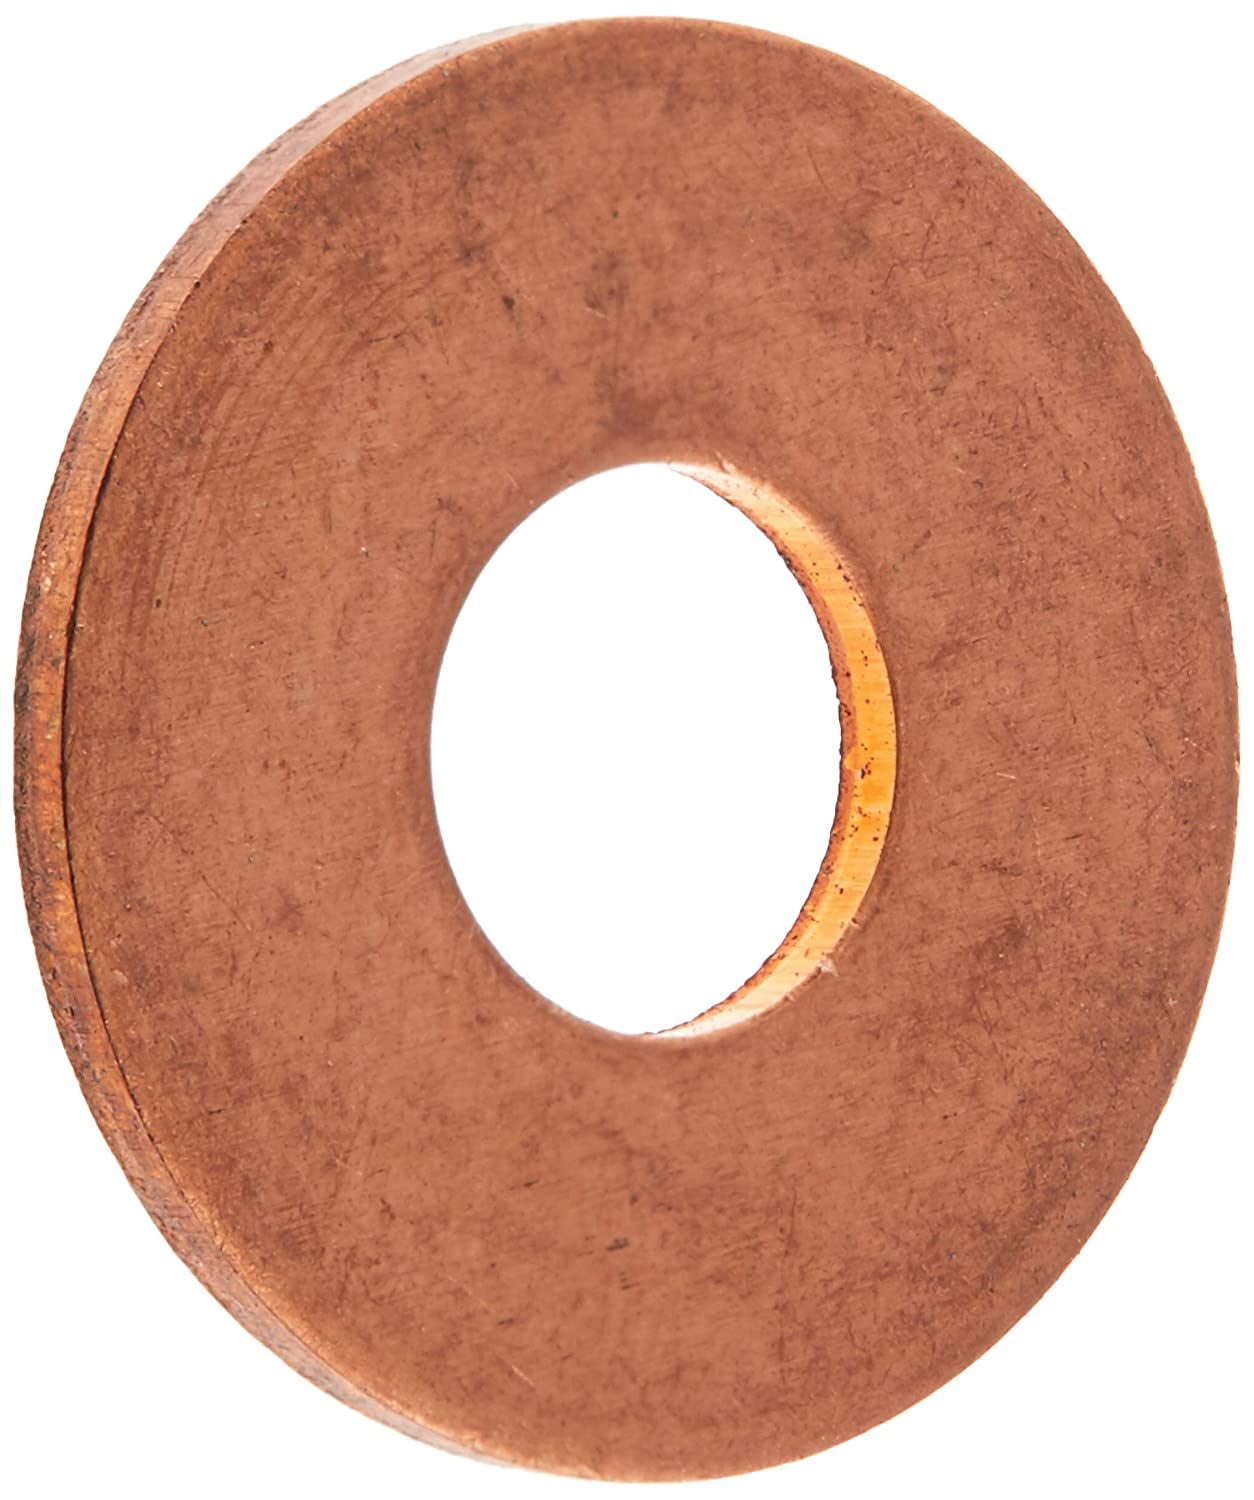 Dorman 725-001 Copper Washer